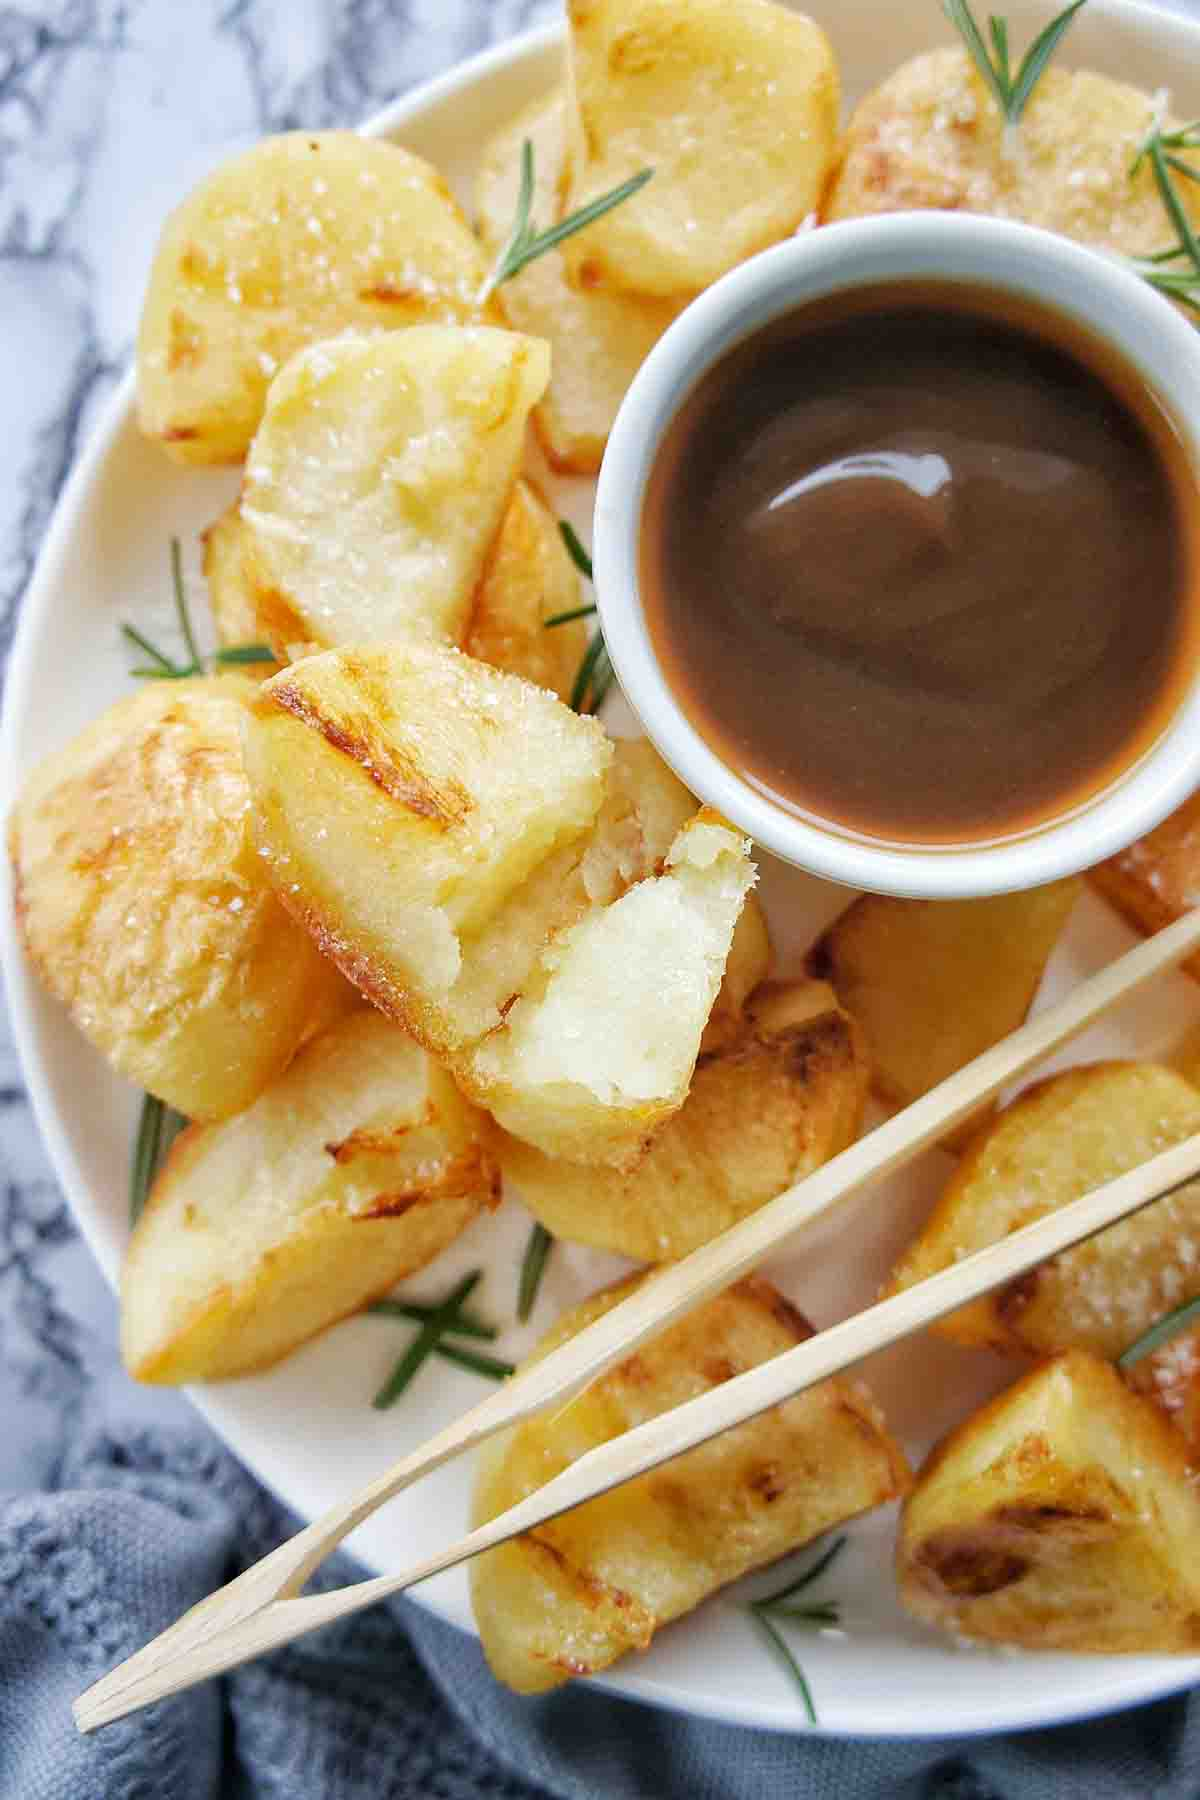 Crispy roast potatoes on a plate with a small bowl of gravy